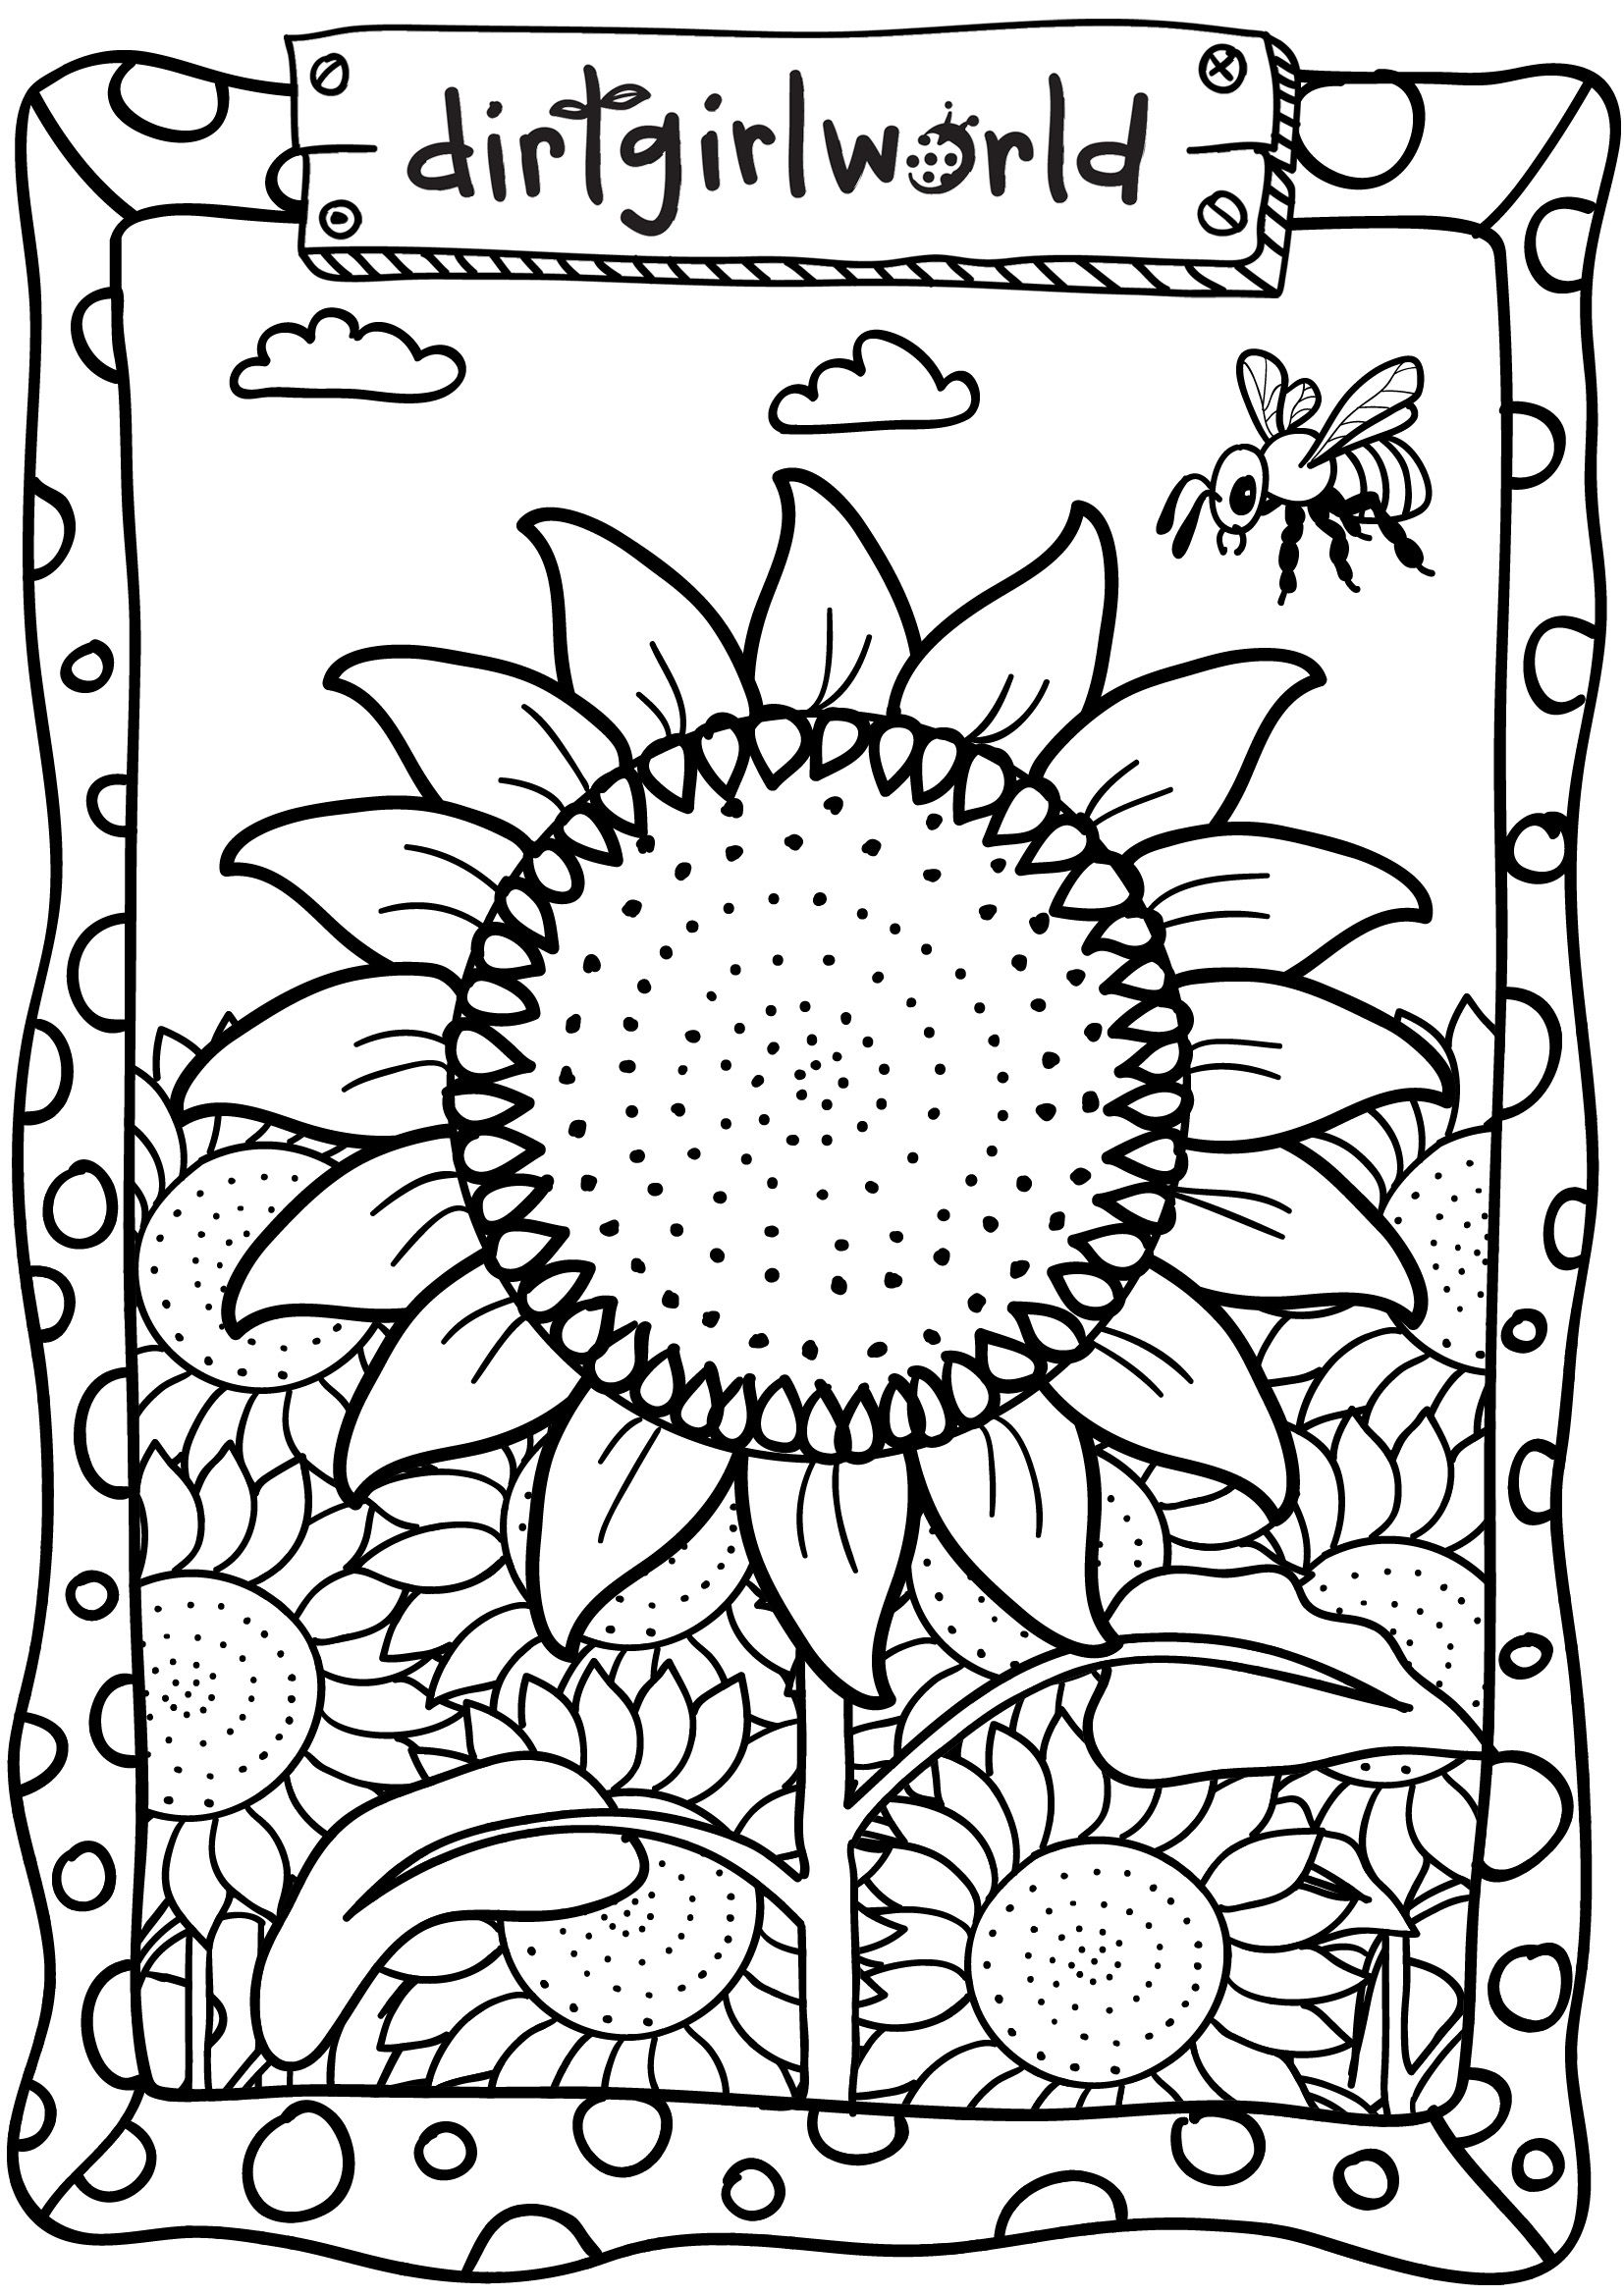 Dirt Girl World Sunflower Colouring Page Special day